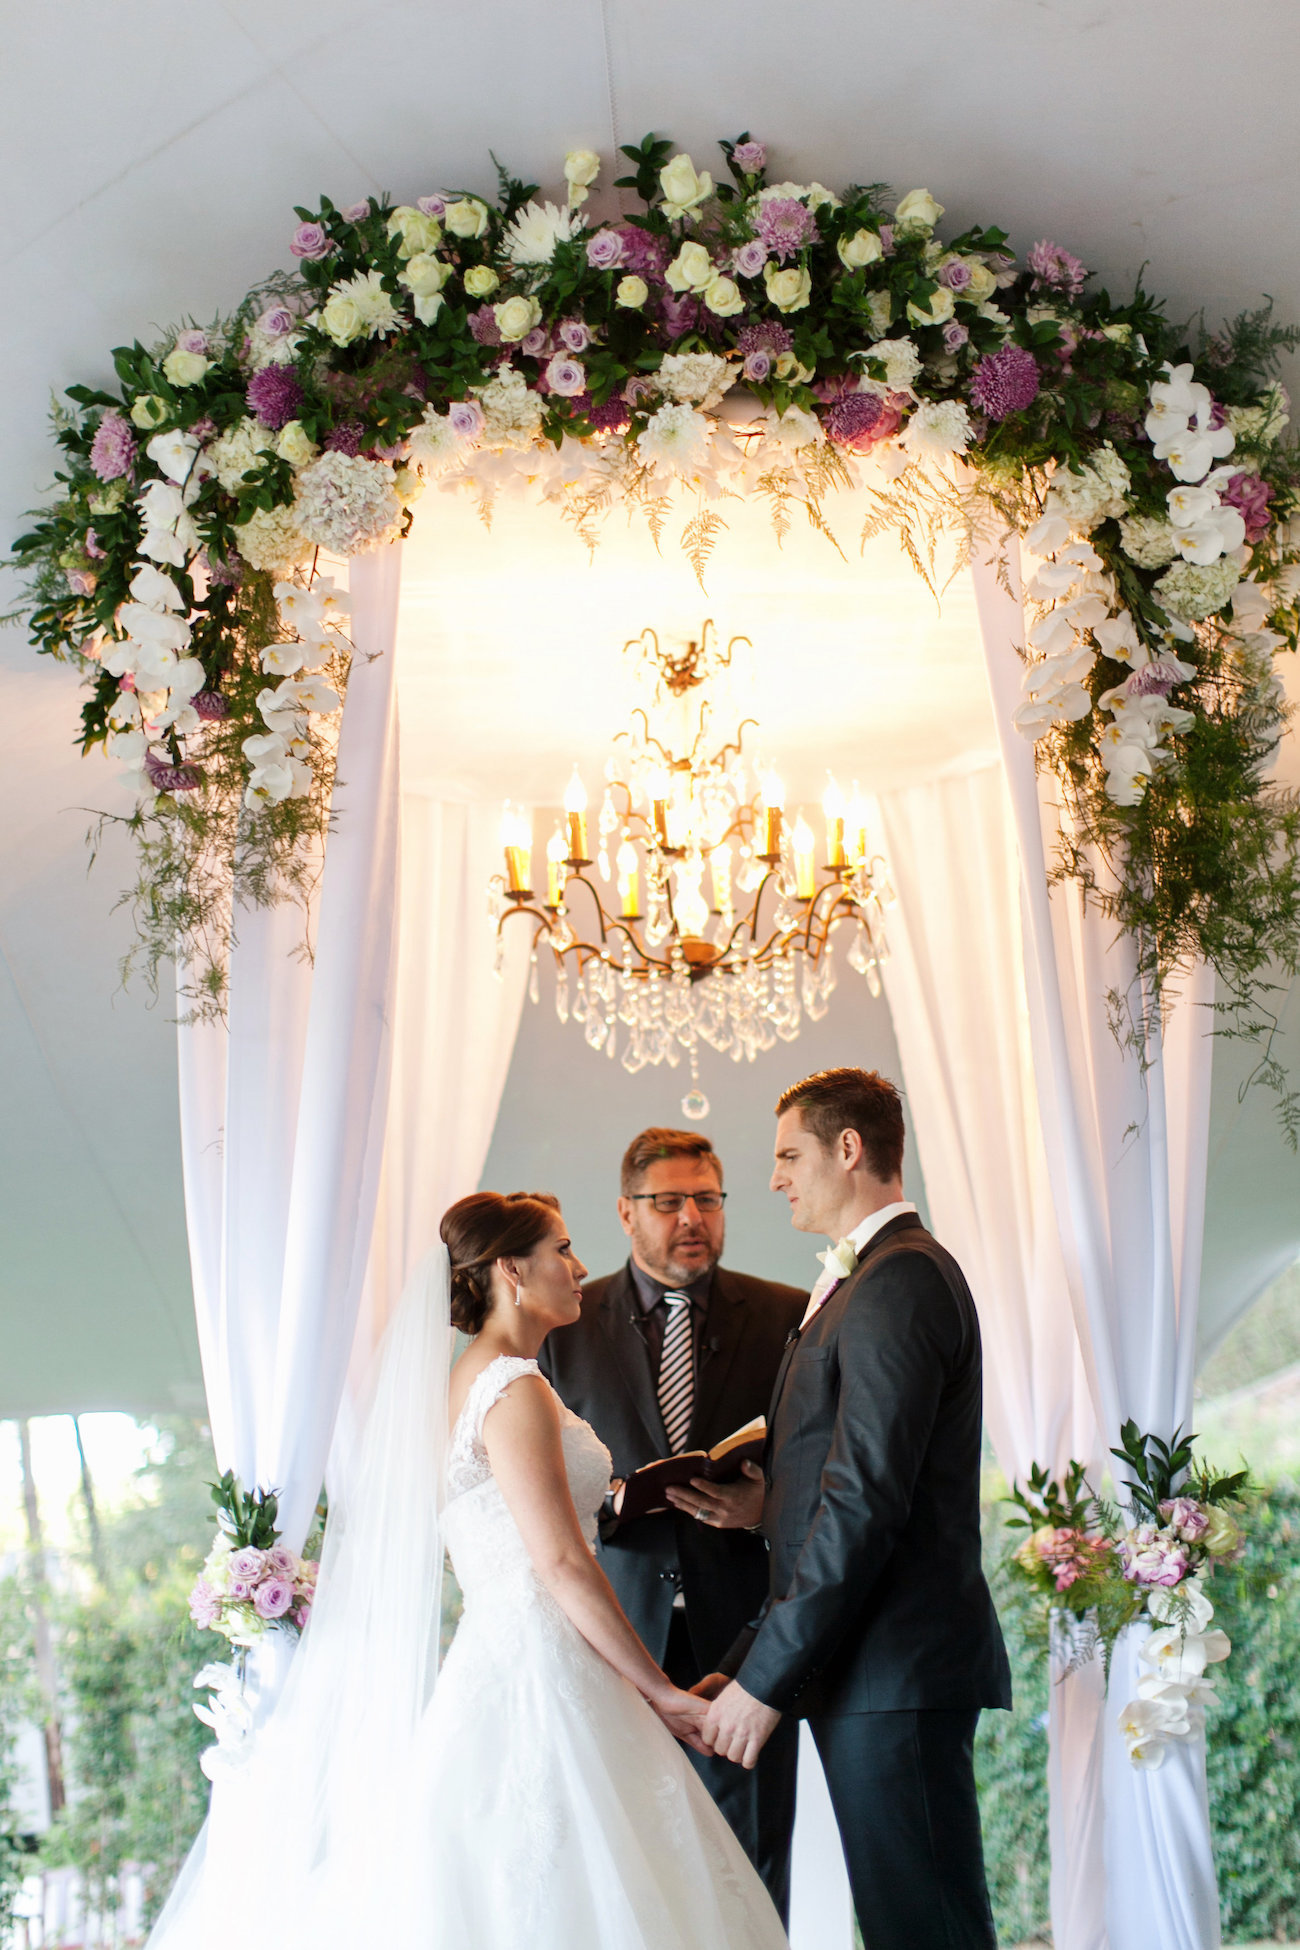 Luxe Draped Floral Arch with Chandelier | Credit: Tyme Photography & Wedding Concepts